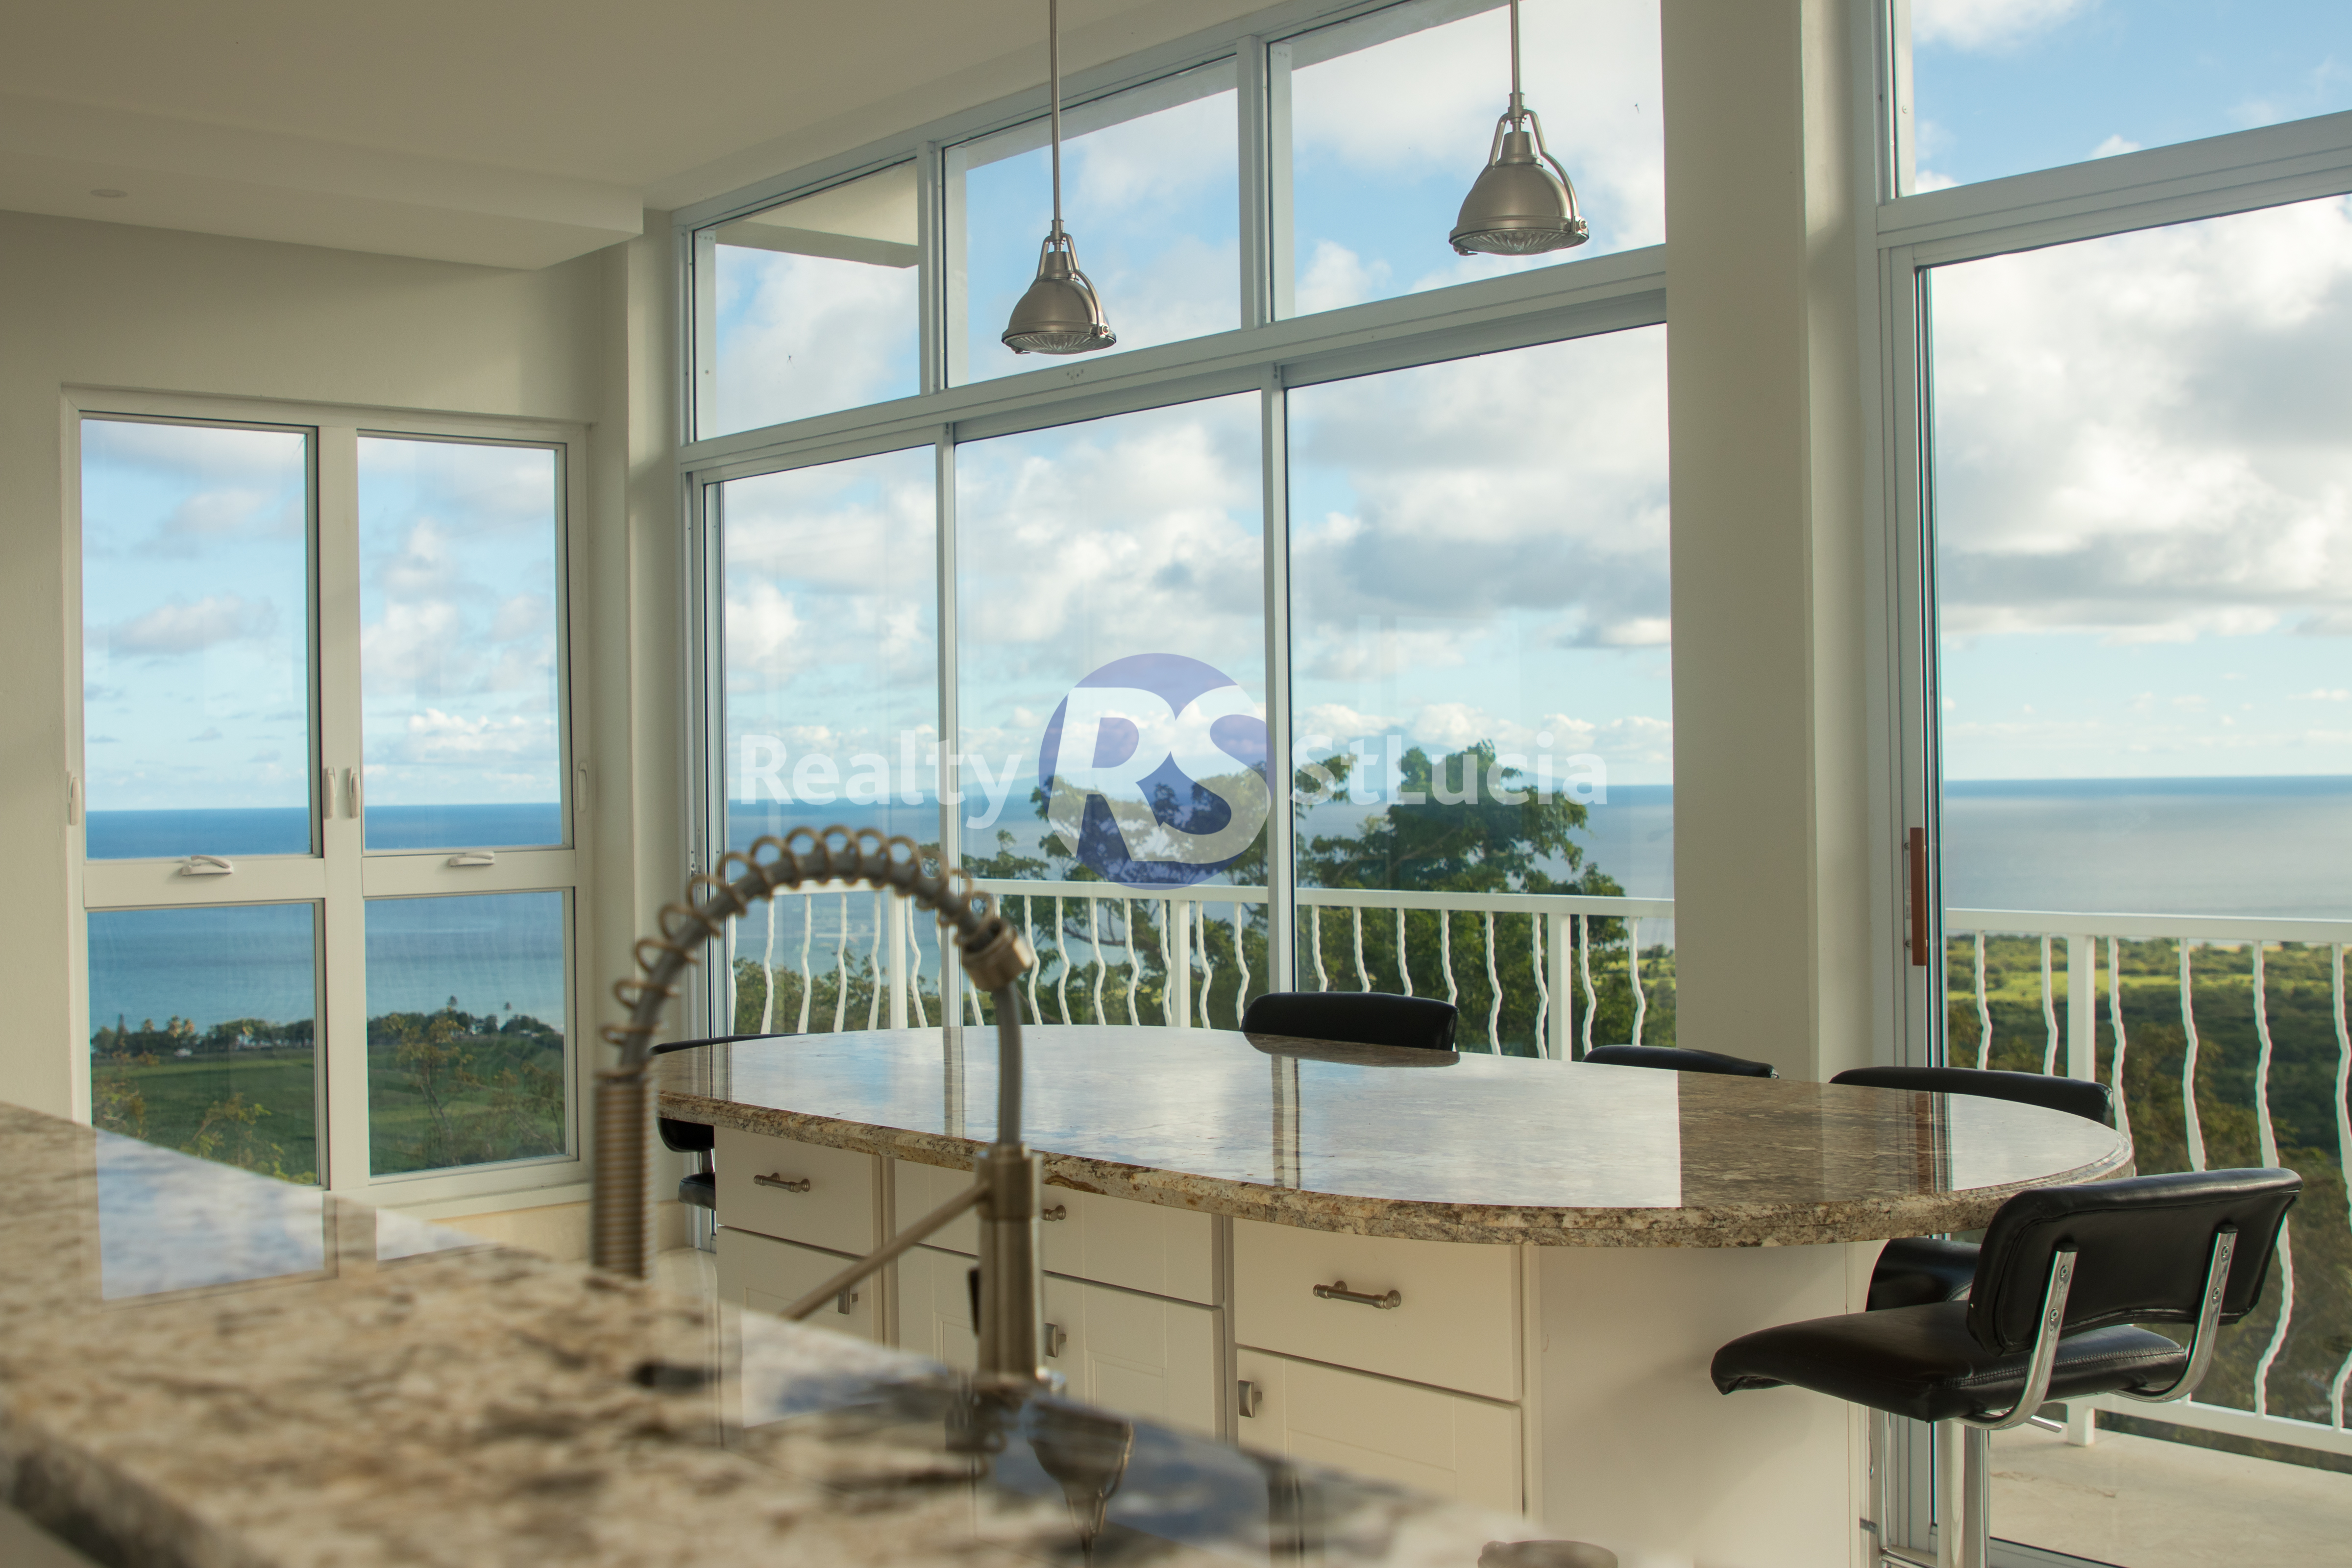 villaa for sale in vieux fort saint lucia near horse racing track